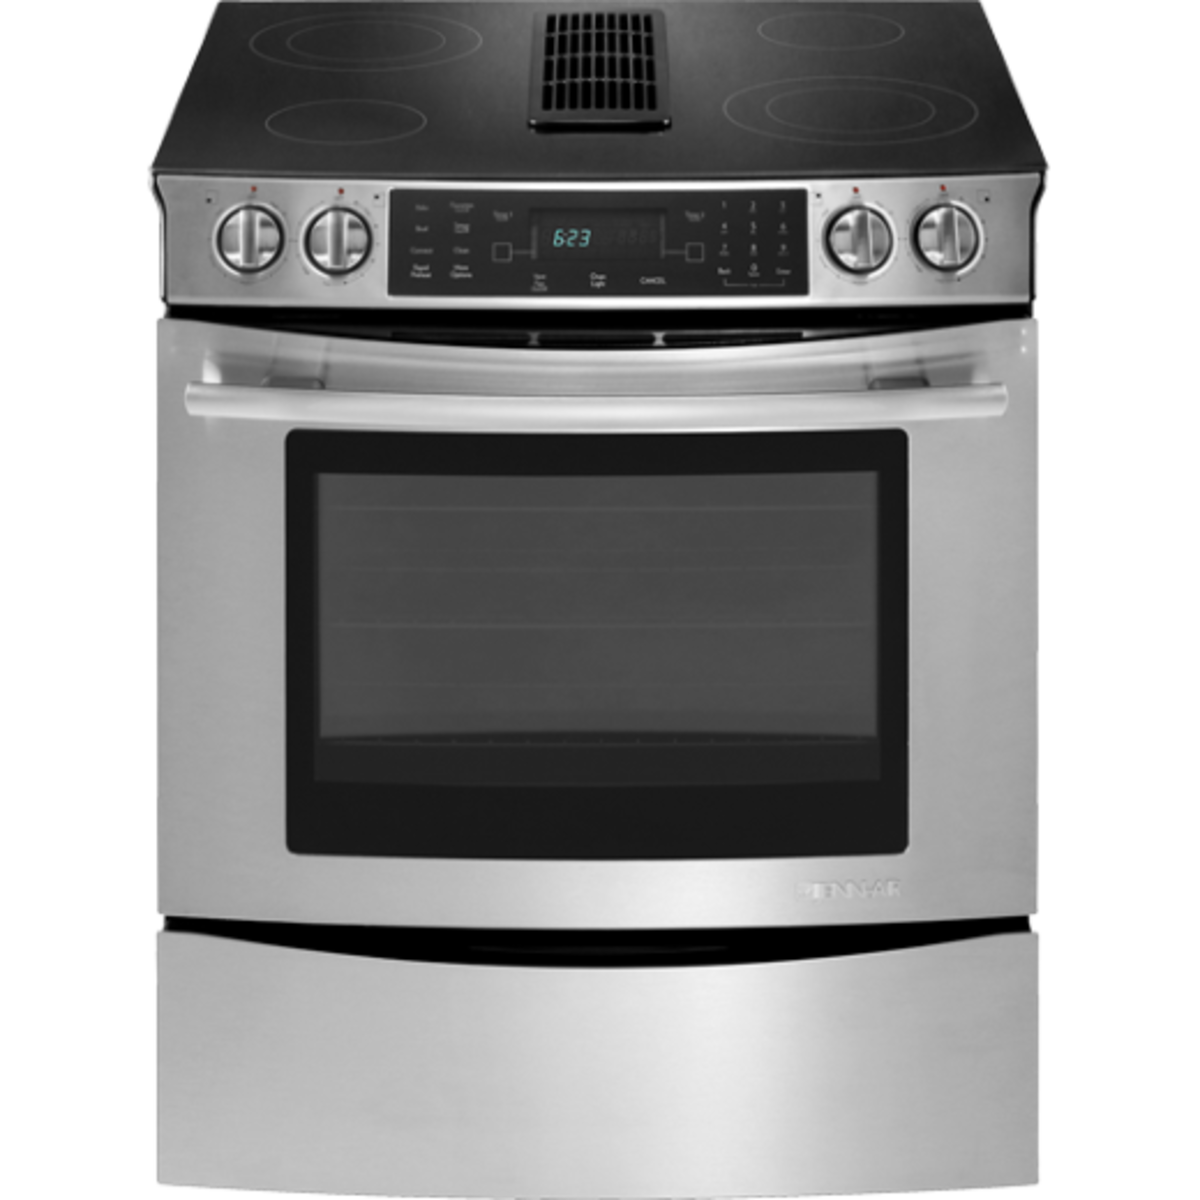 The Jenn Air JES9800CAS Is An Electric Range You Do Not Want In Your Kitchen .